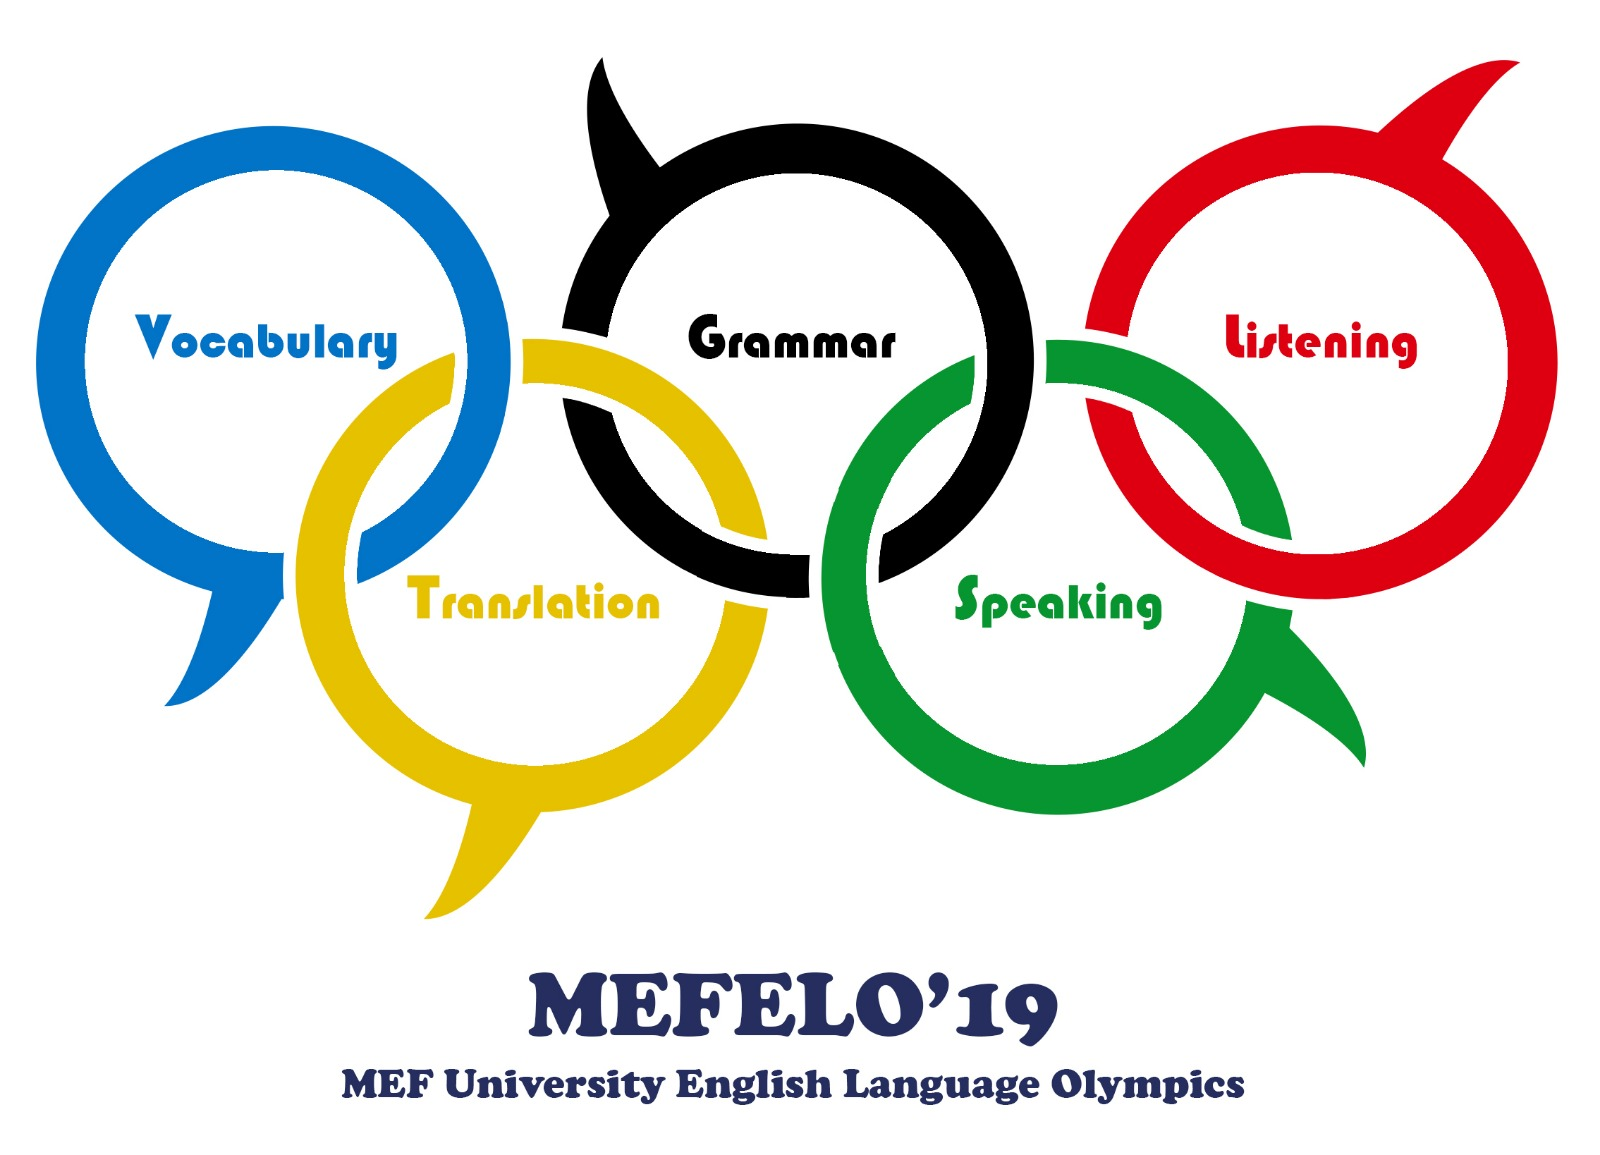 What Is MEFELO?